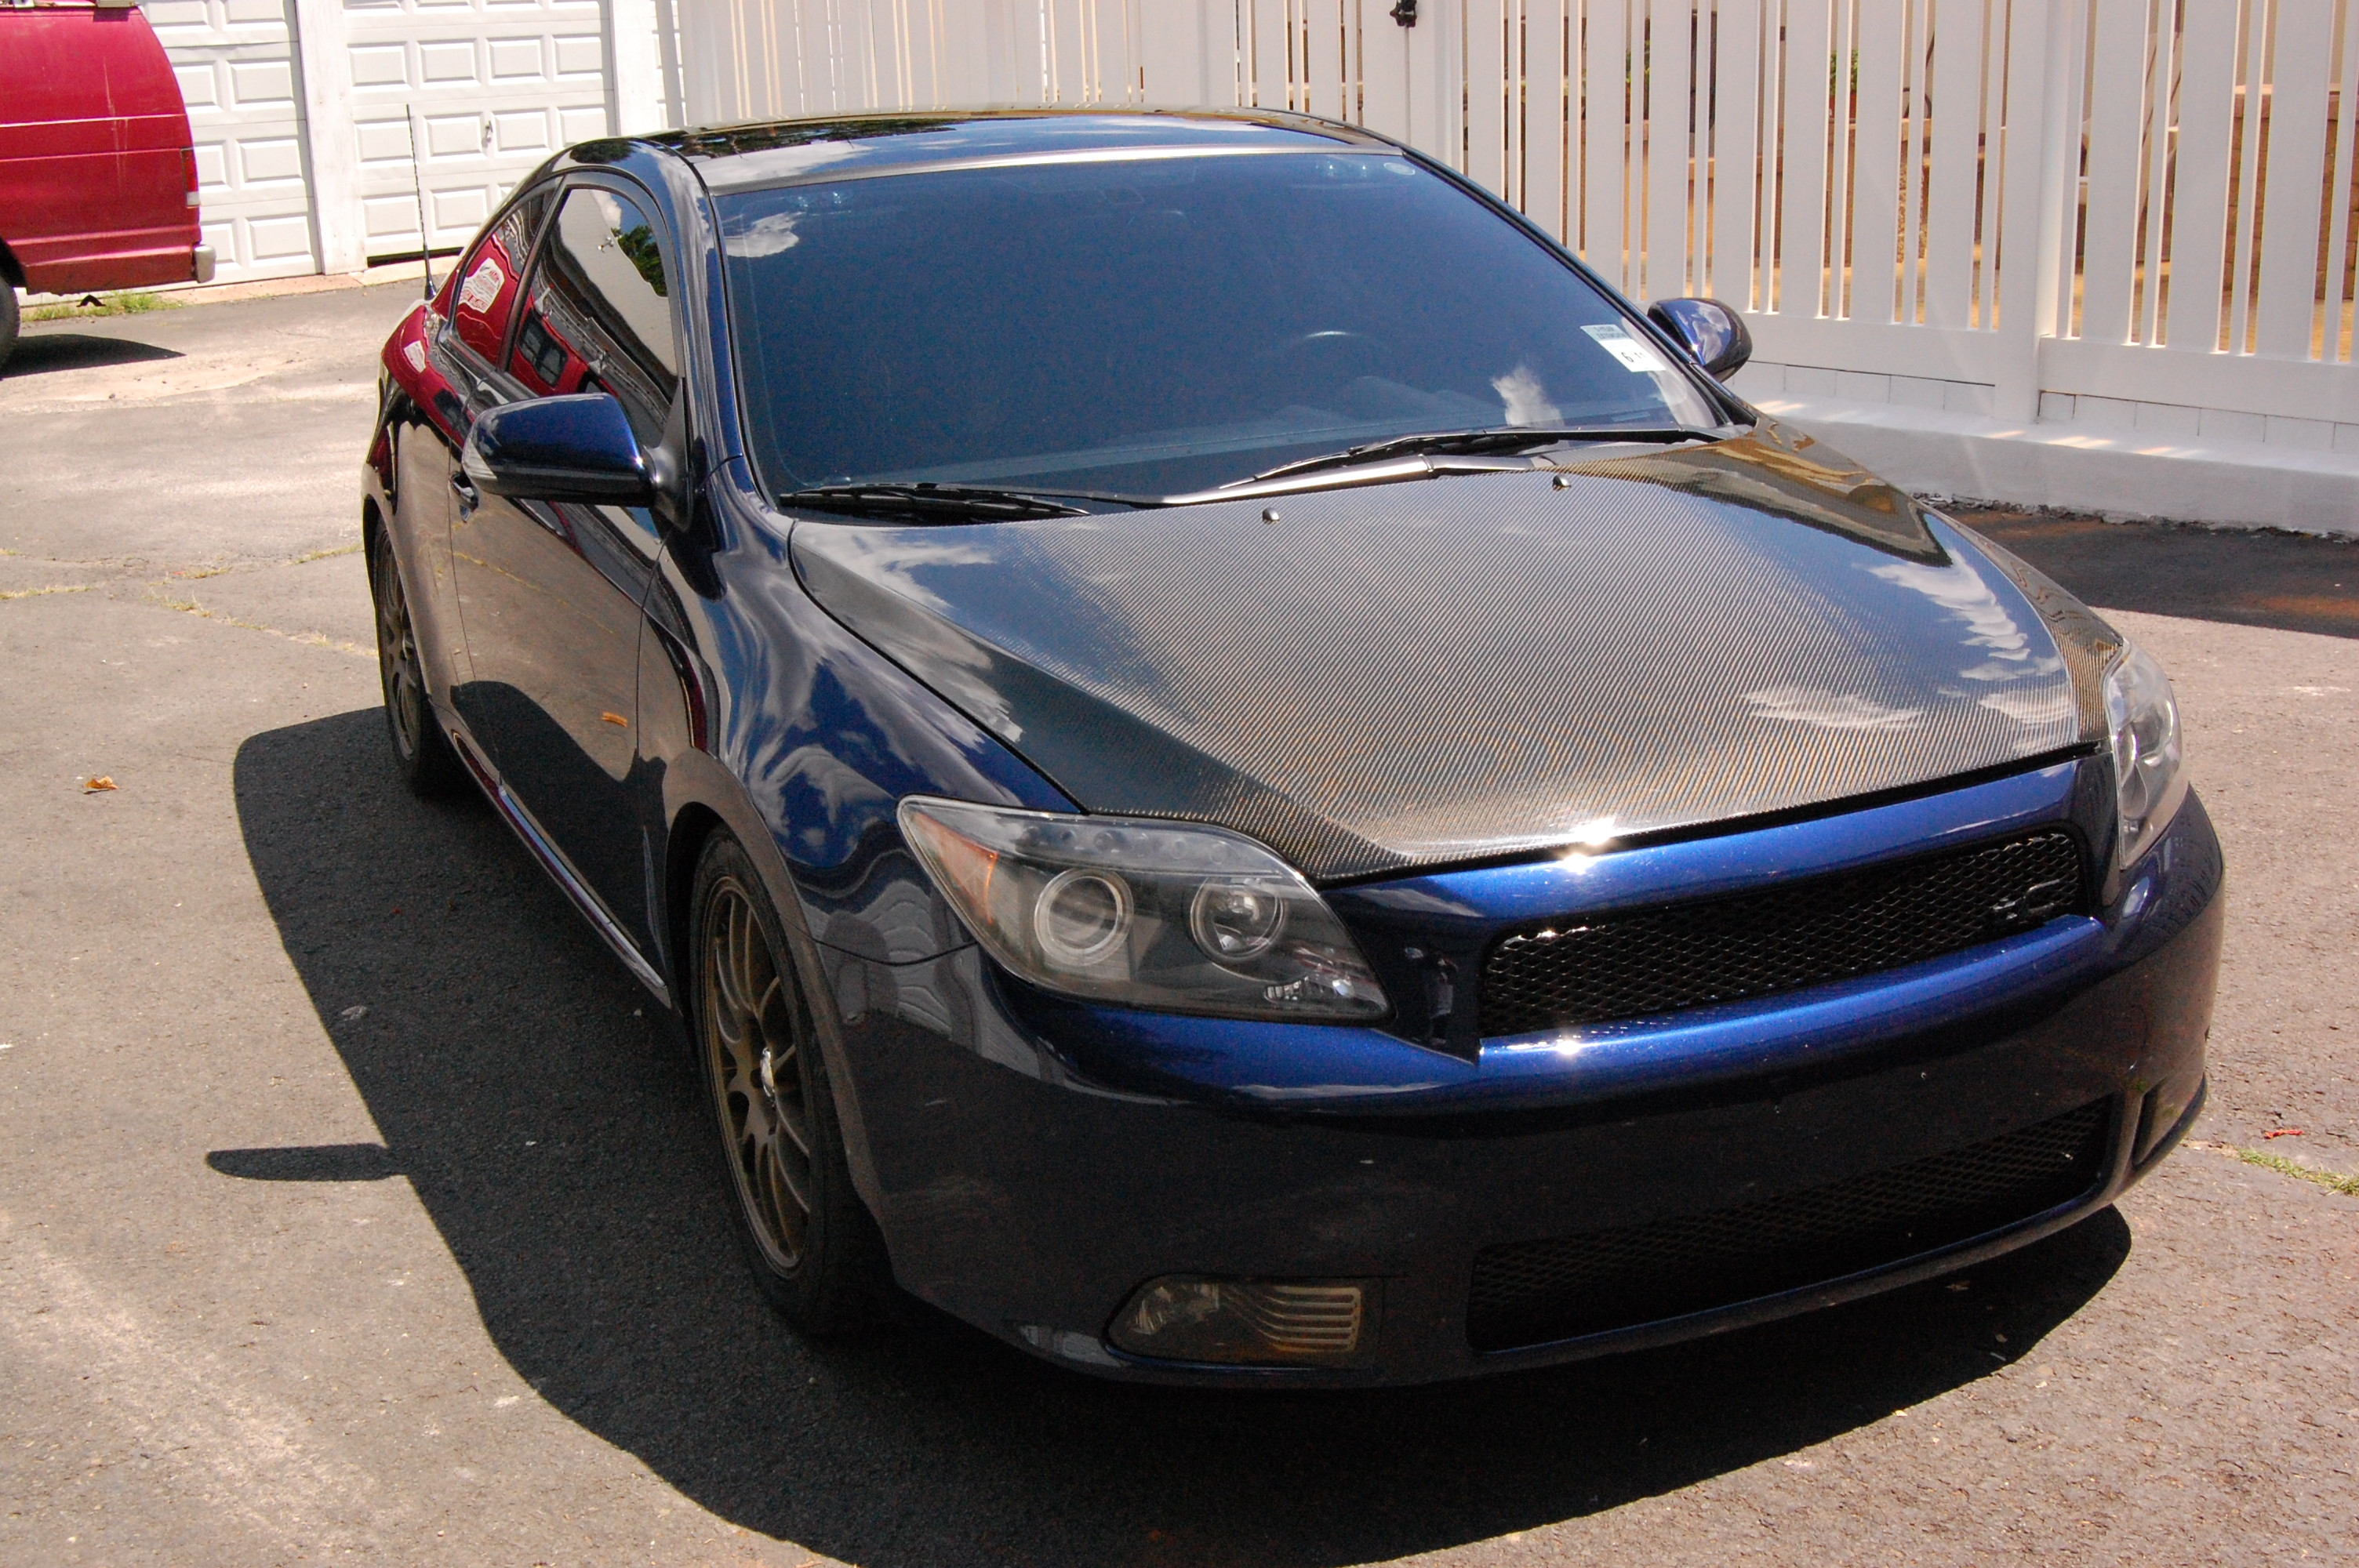 SkeeterTPE 2007 Scion tC 15004541